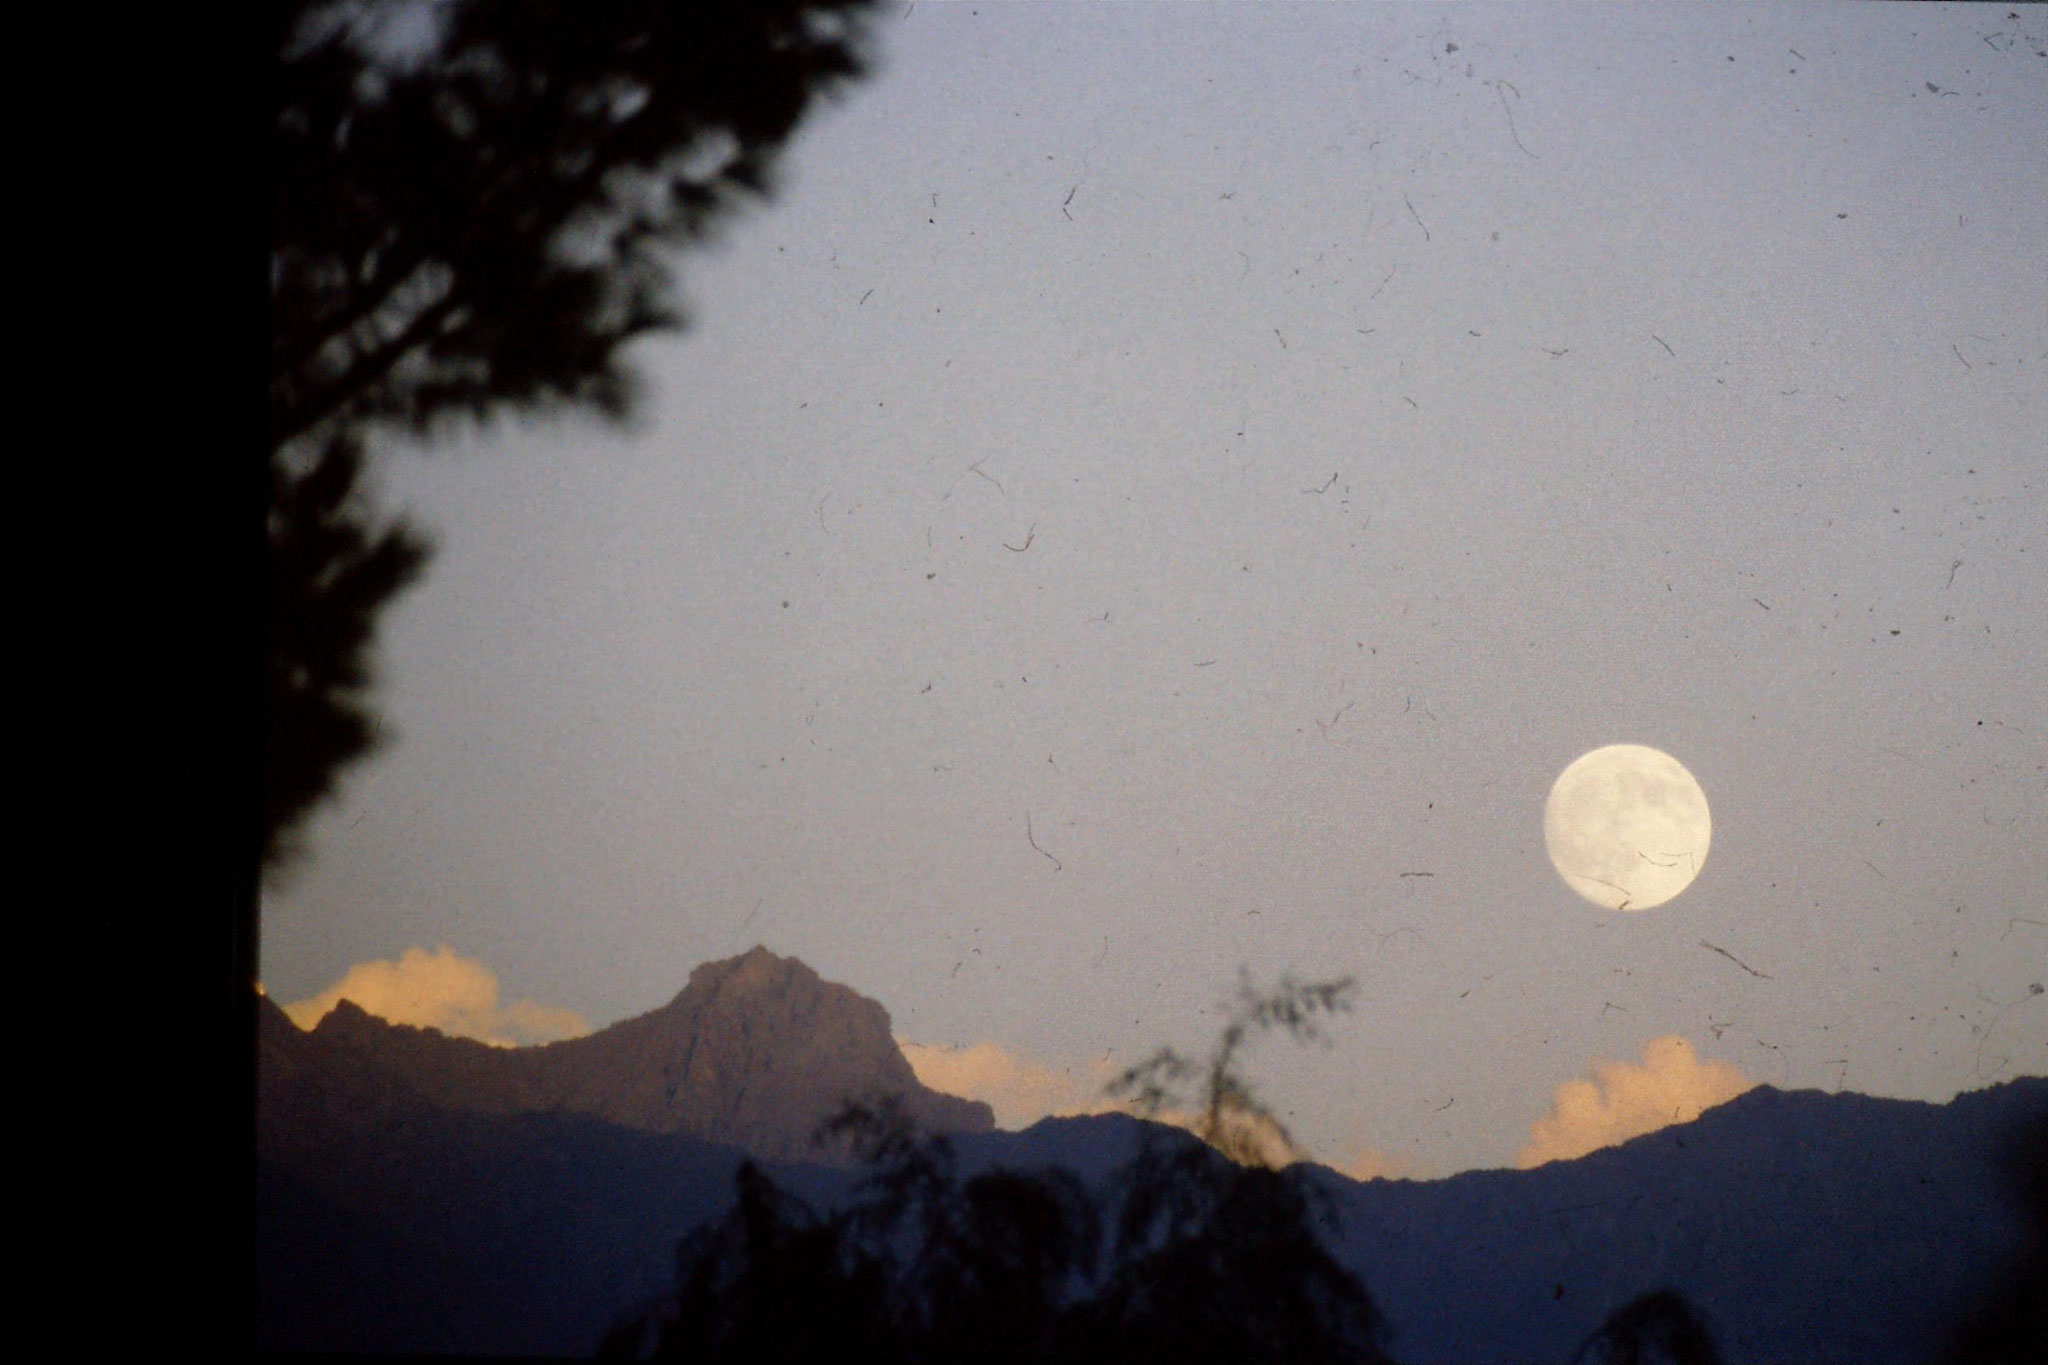 14/9/1989: 1: moon over Gilgit